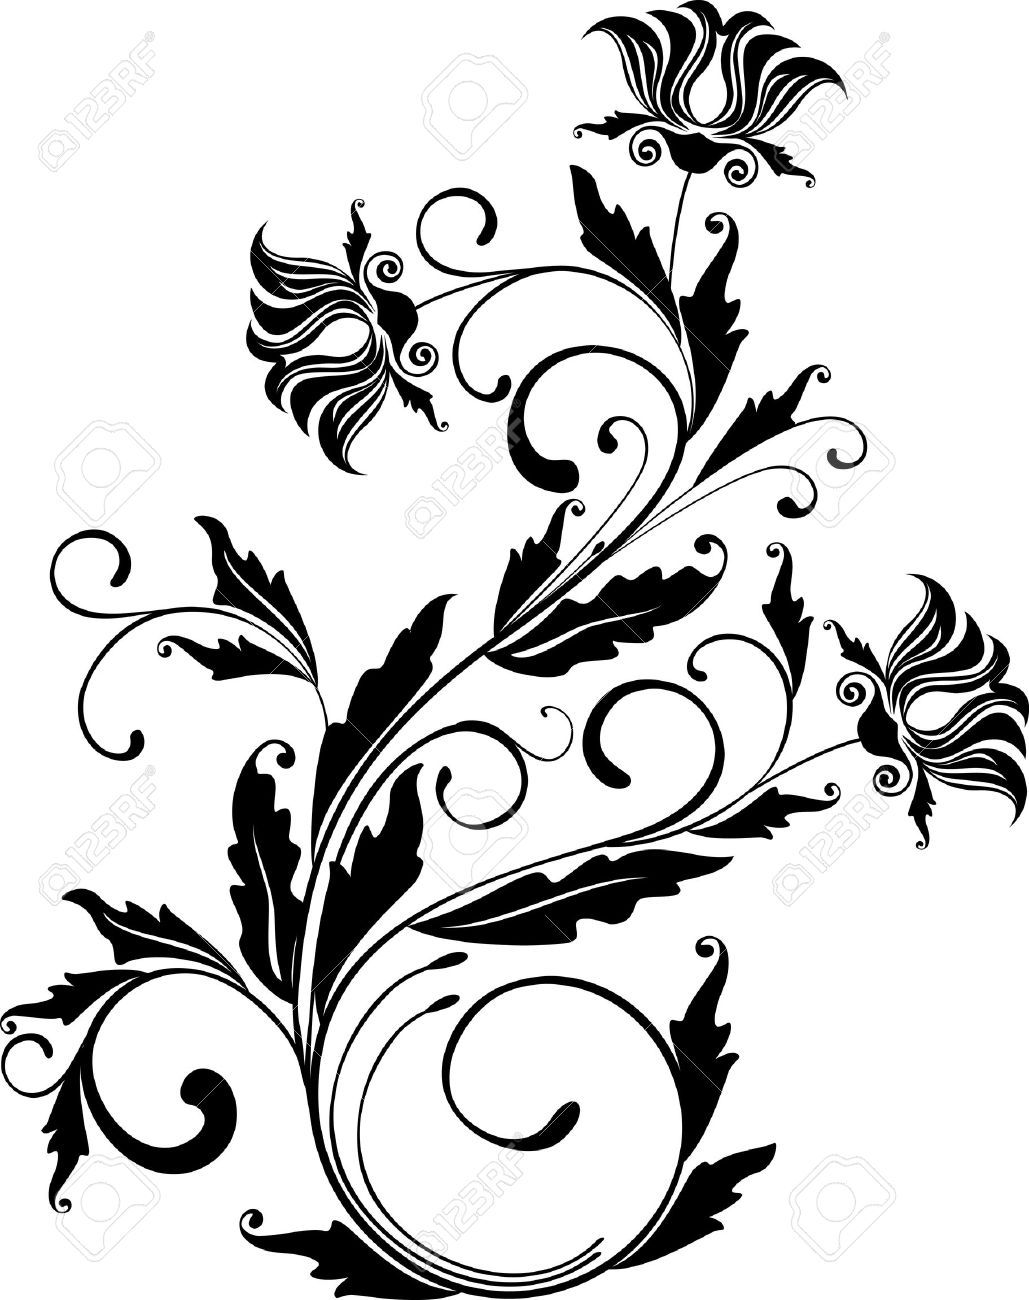 monochrome floral ornament vector illustration royalty free